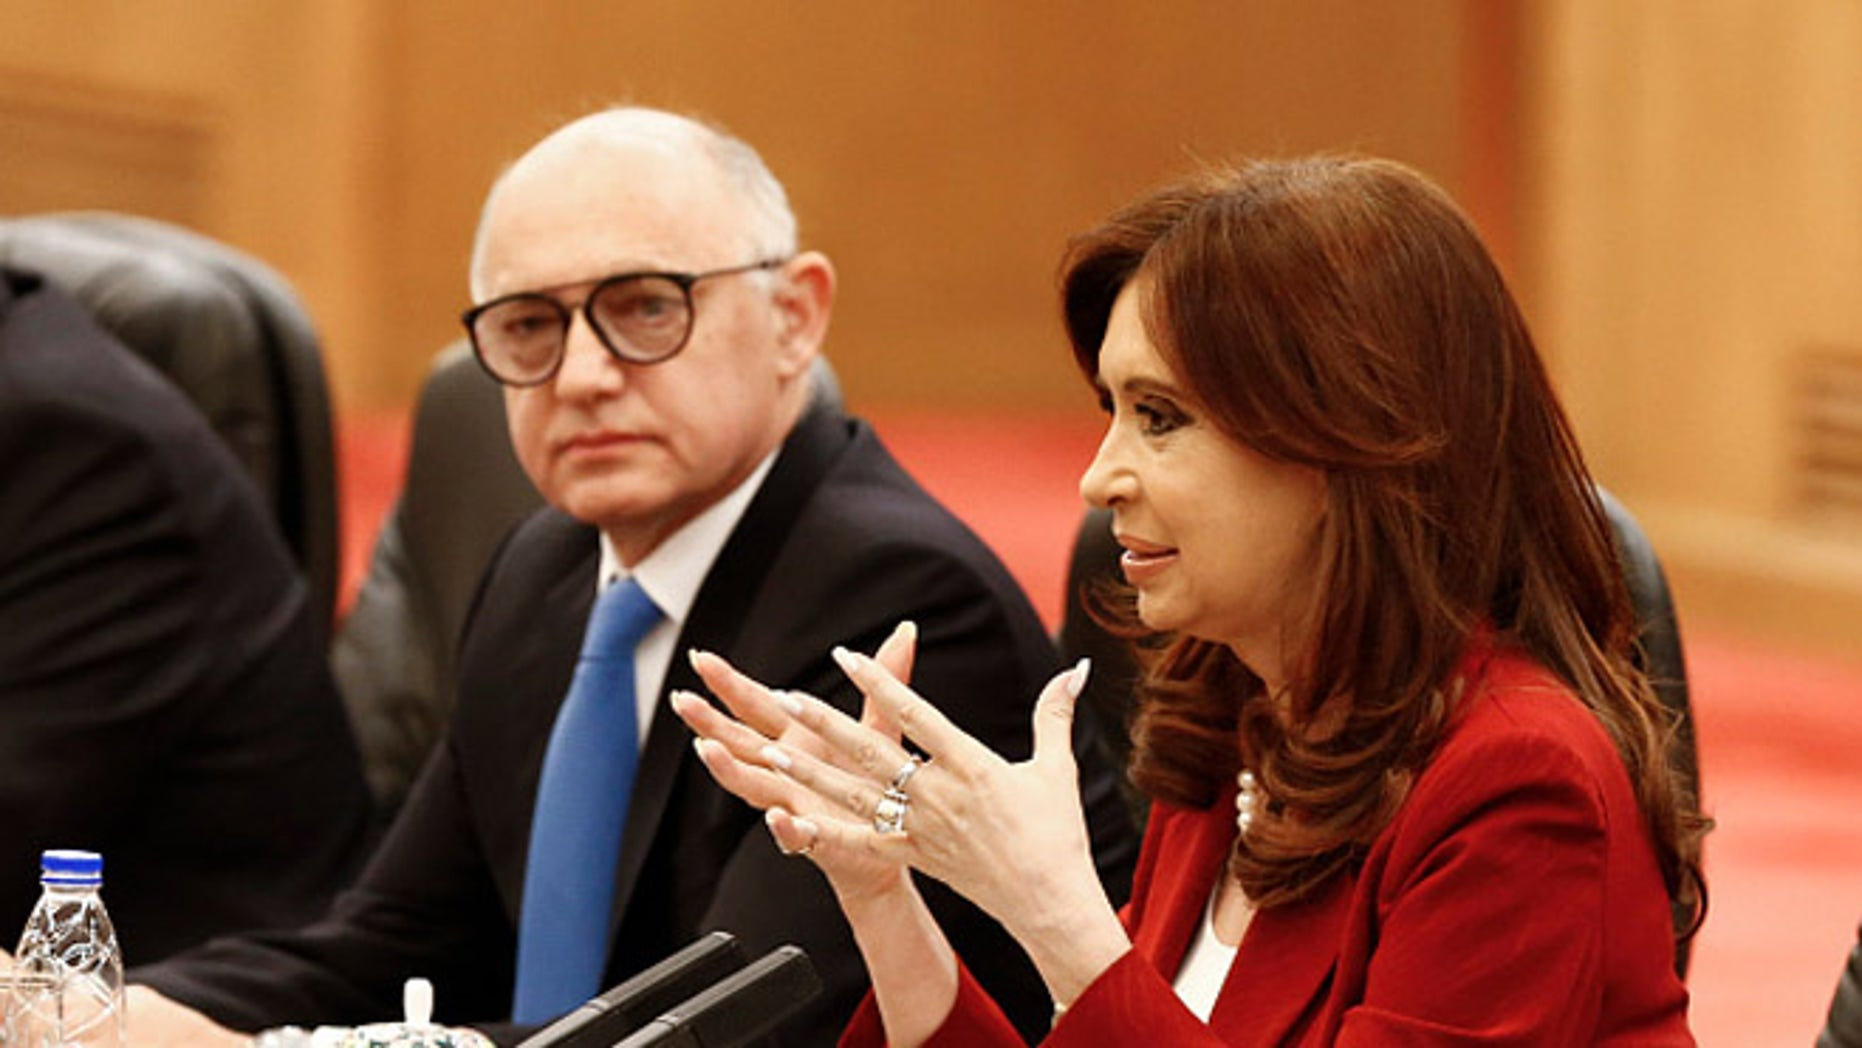 Argentinian President Cristina Fernandez and foreign minister Hector Timerman on February 4, 2015 in Beijing, China.